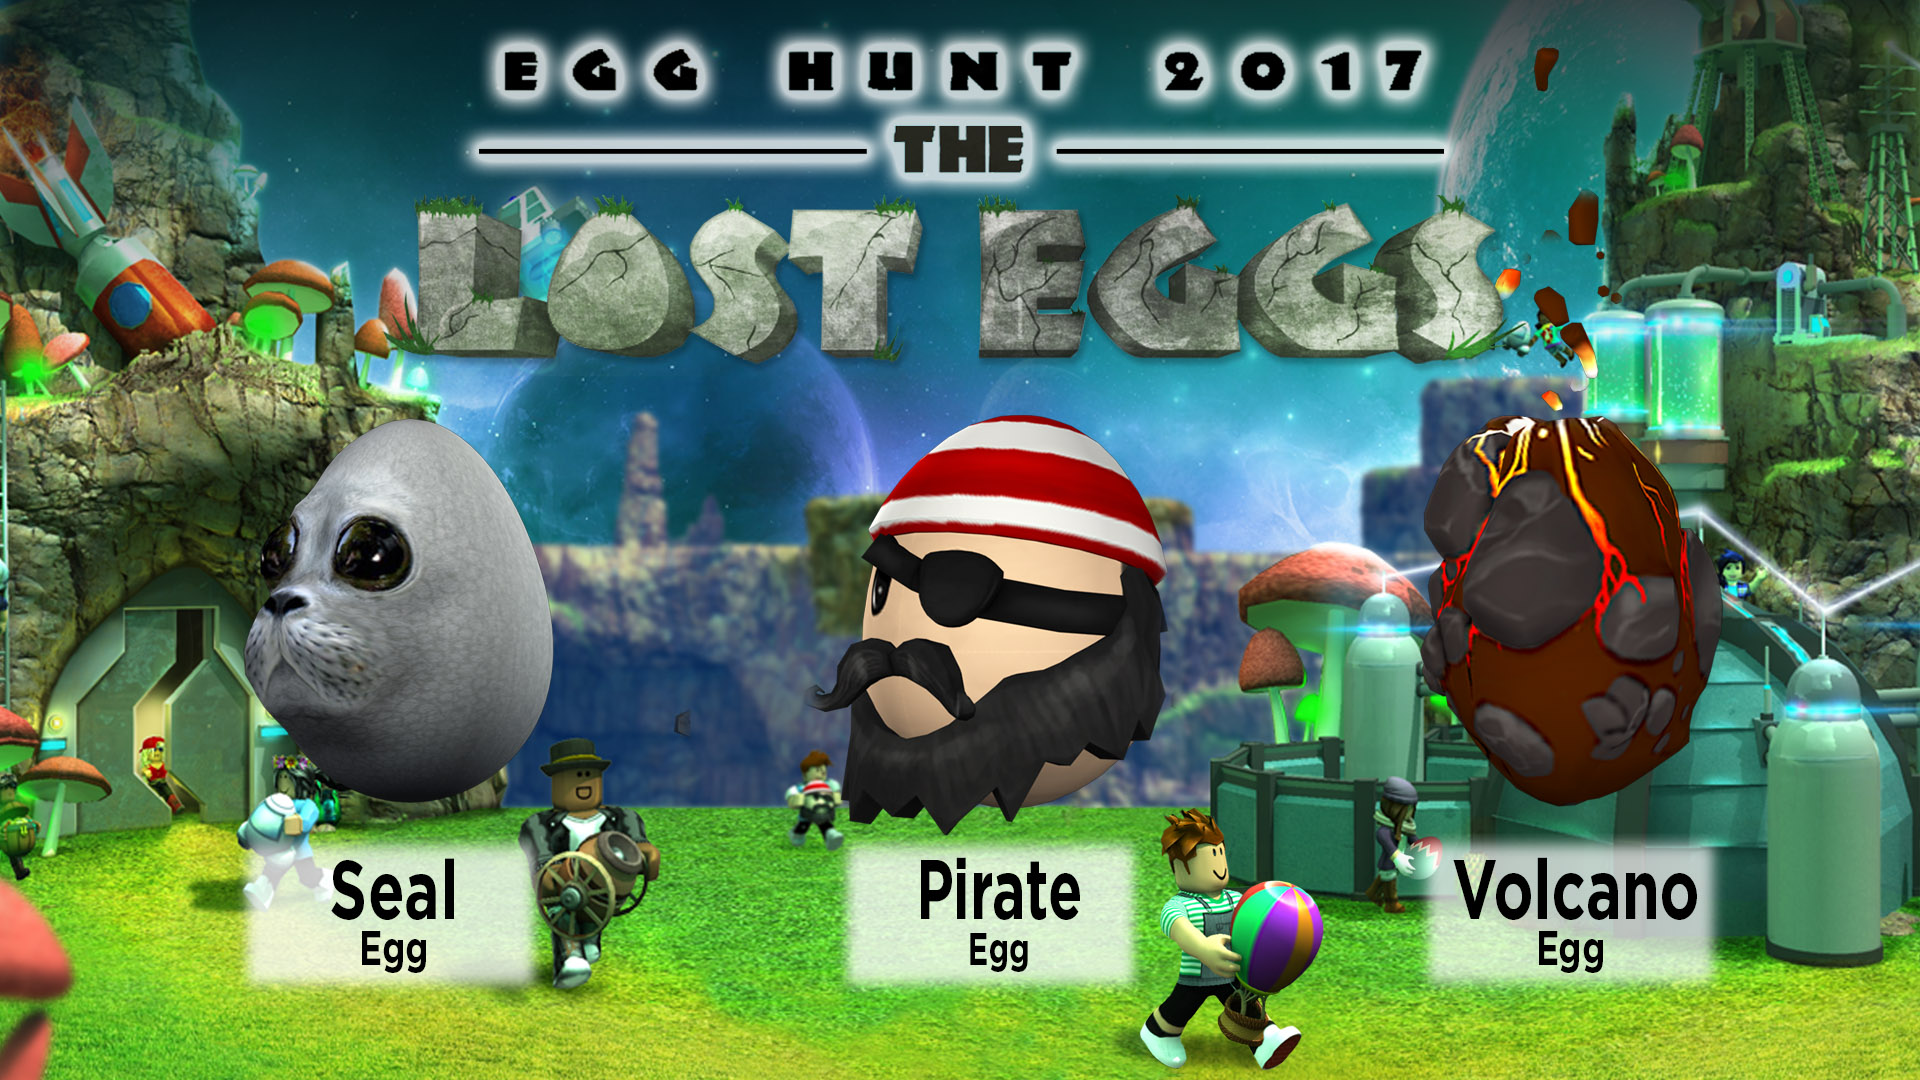 'Roblox' Egg Hunt 2017: Leaked Eggs, Gear, Dates ...